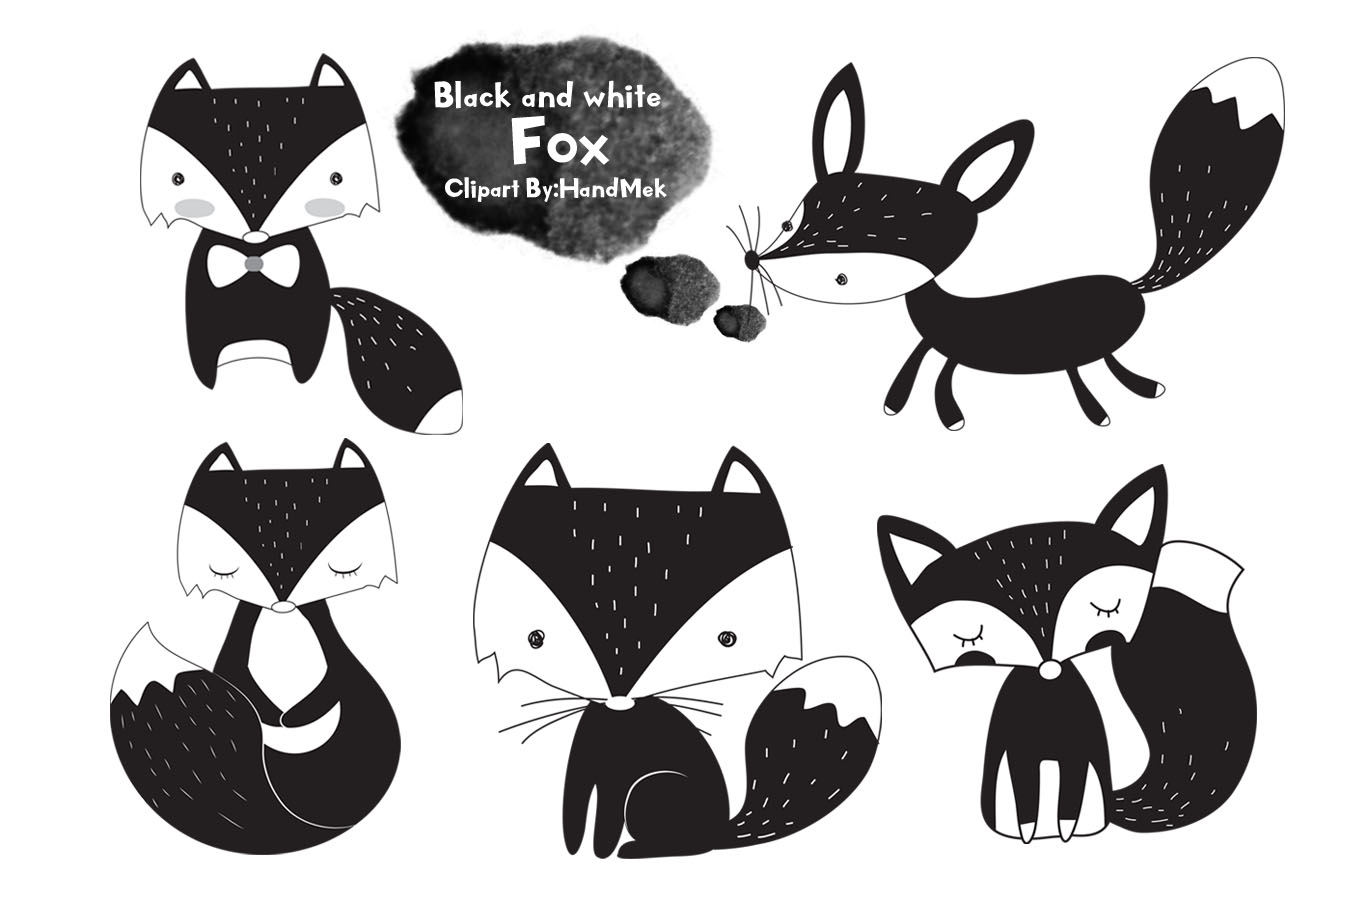 Black and white fox clipart..